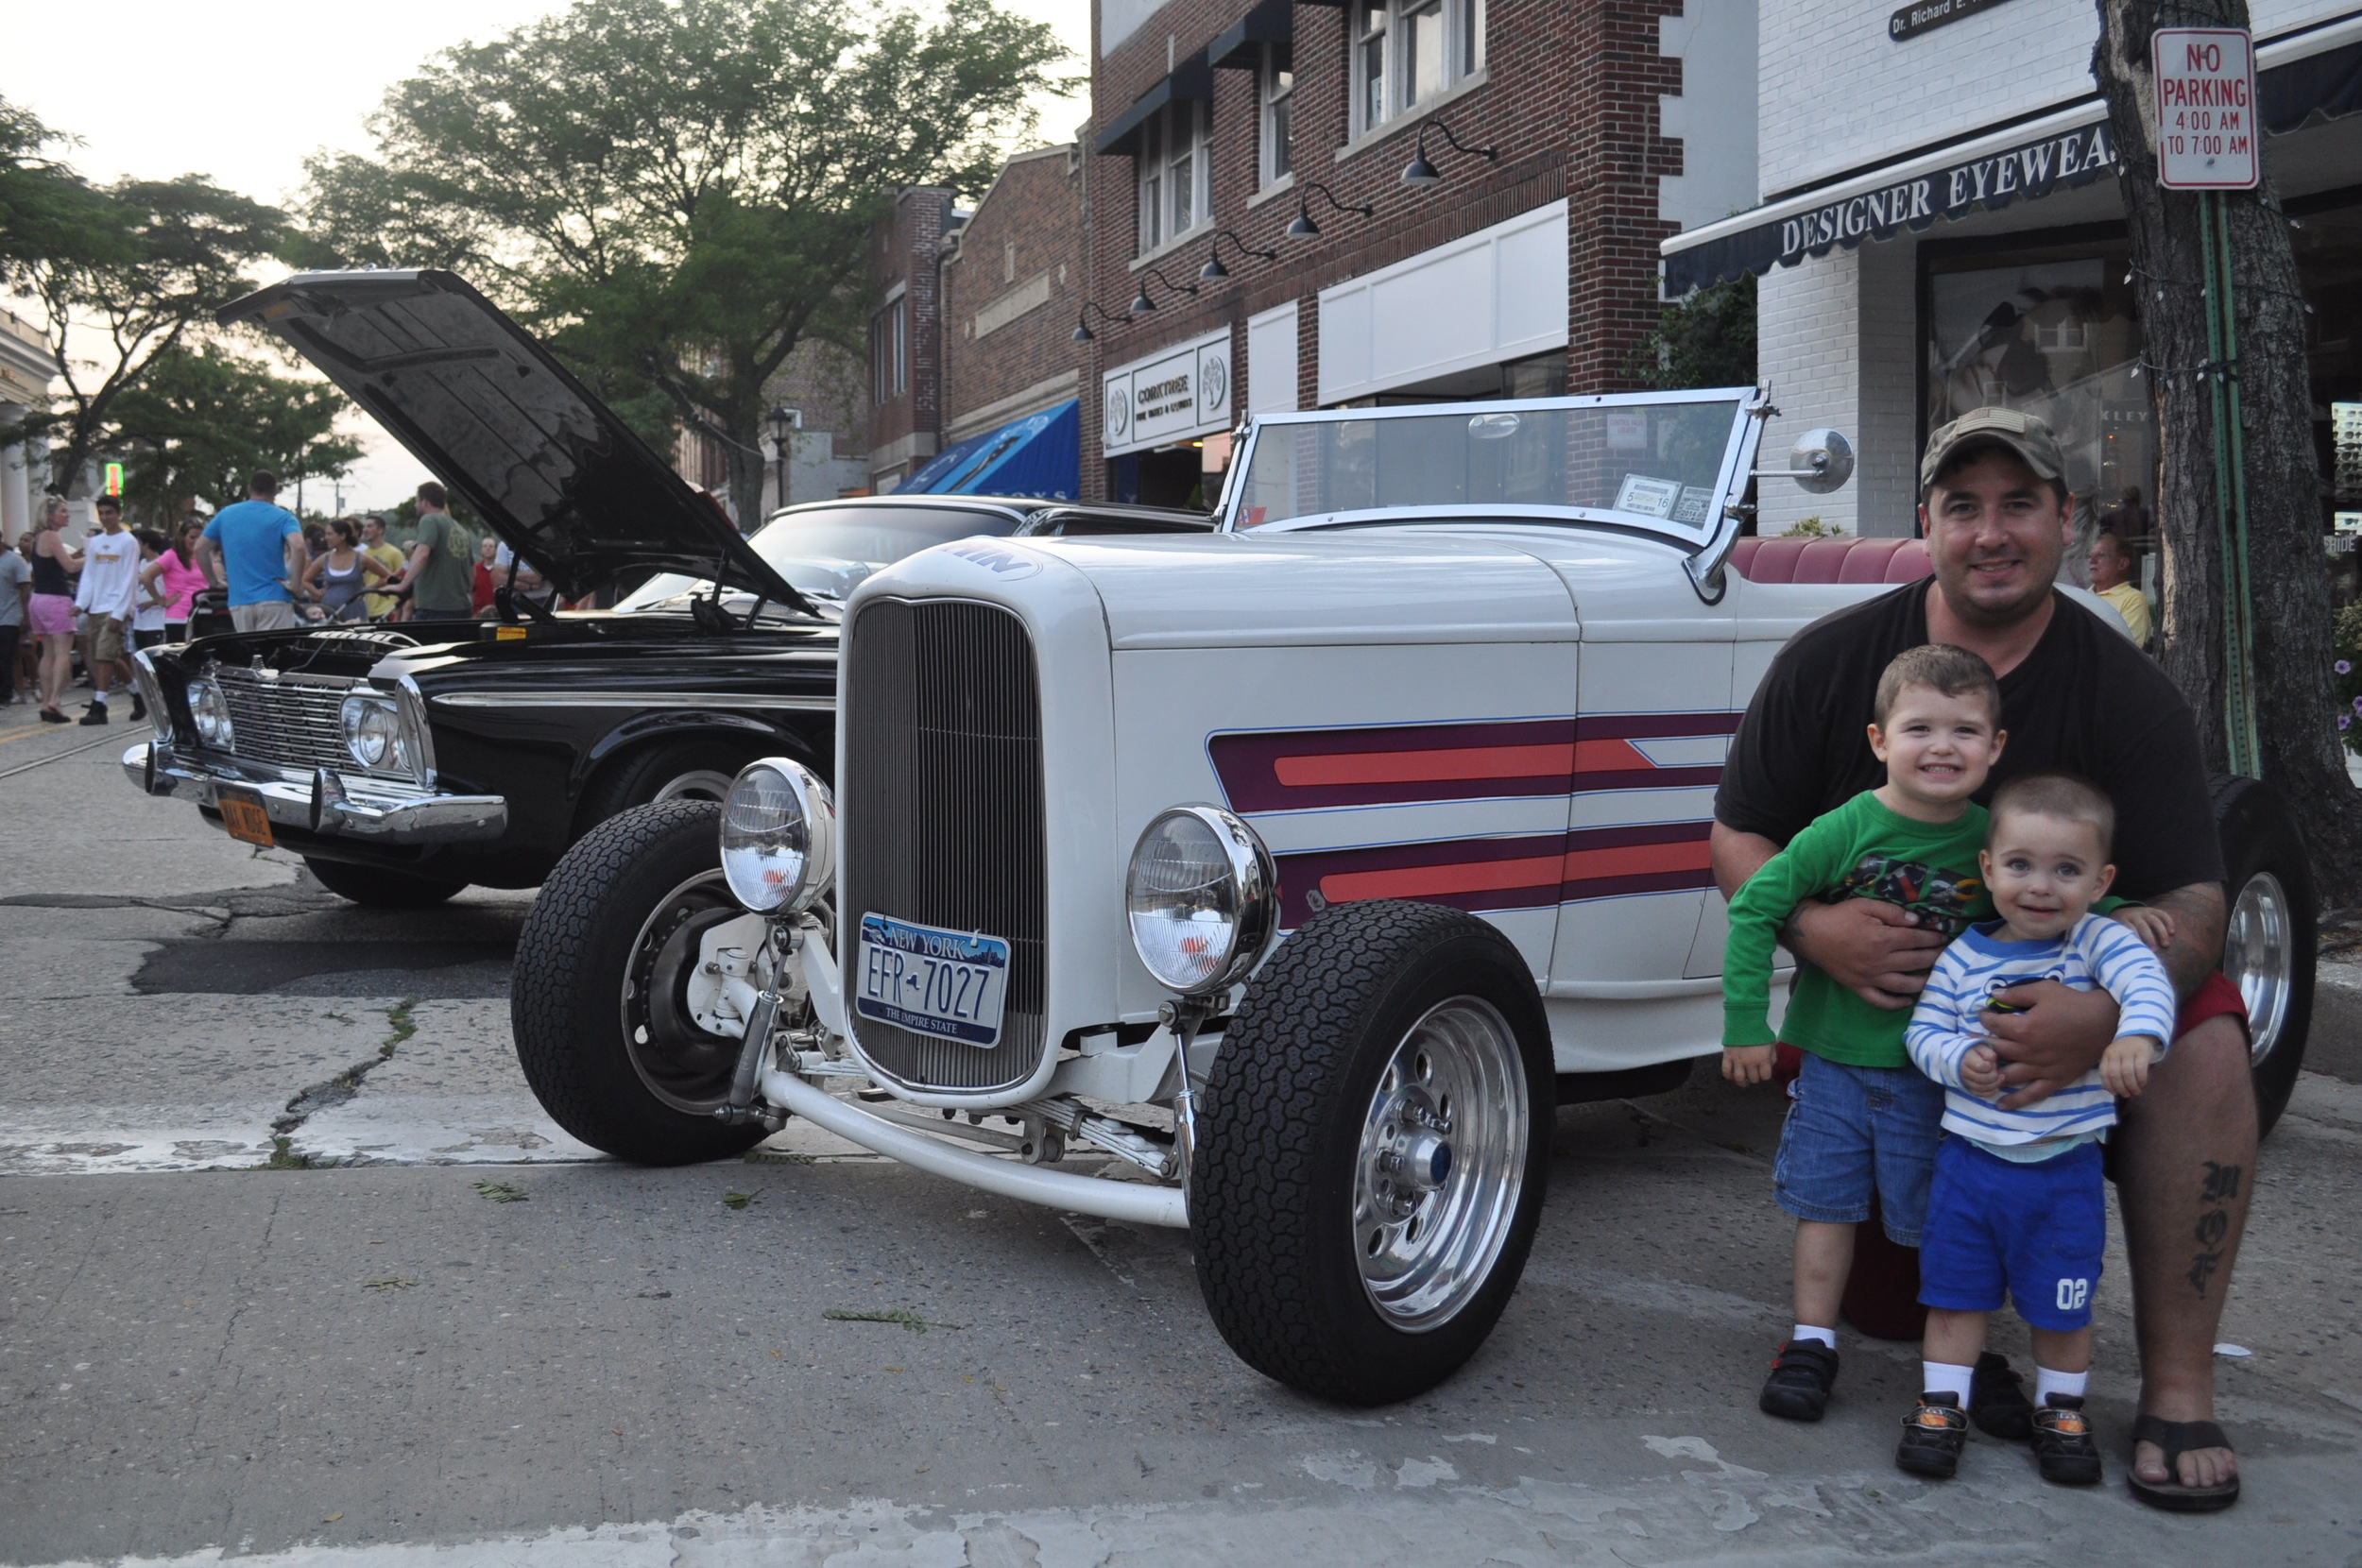 Jesse Quinn Sr., of Huntington, joins his sons, Gavin and Jesse Jr. by a vintage Ford hotrod – one of dozens of classic cars on display.